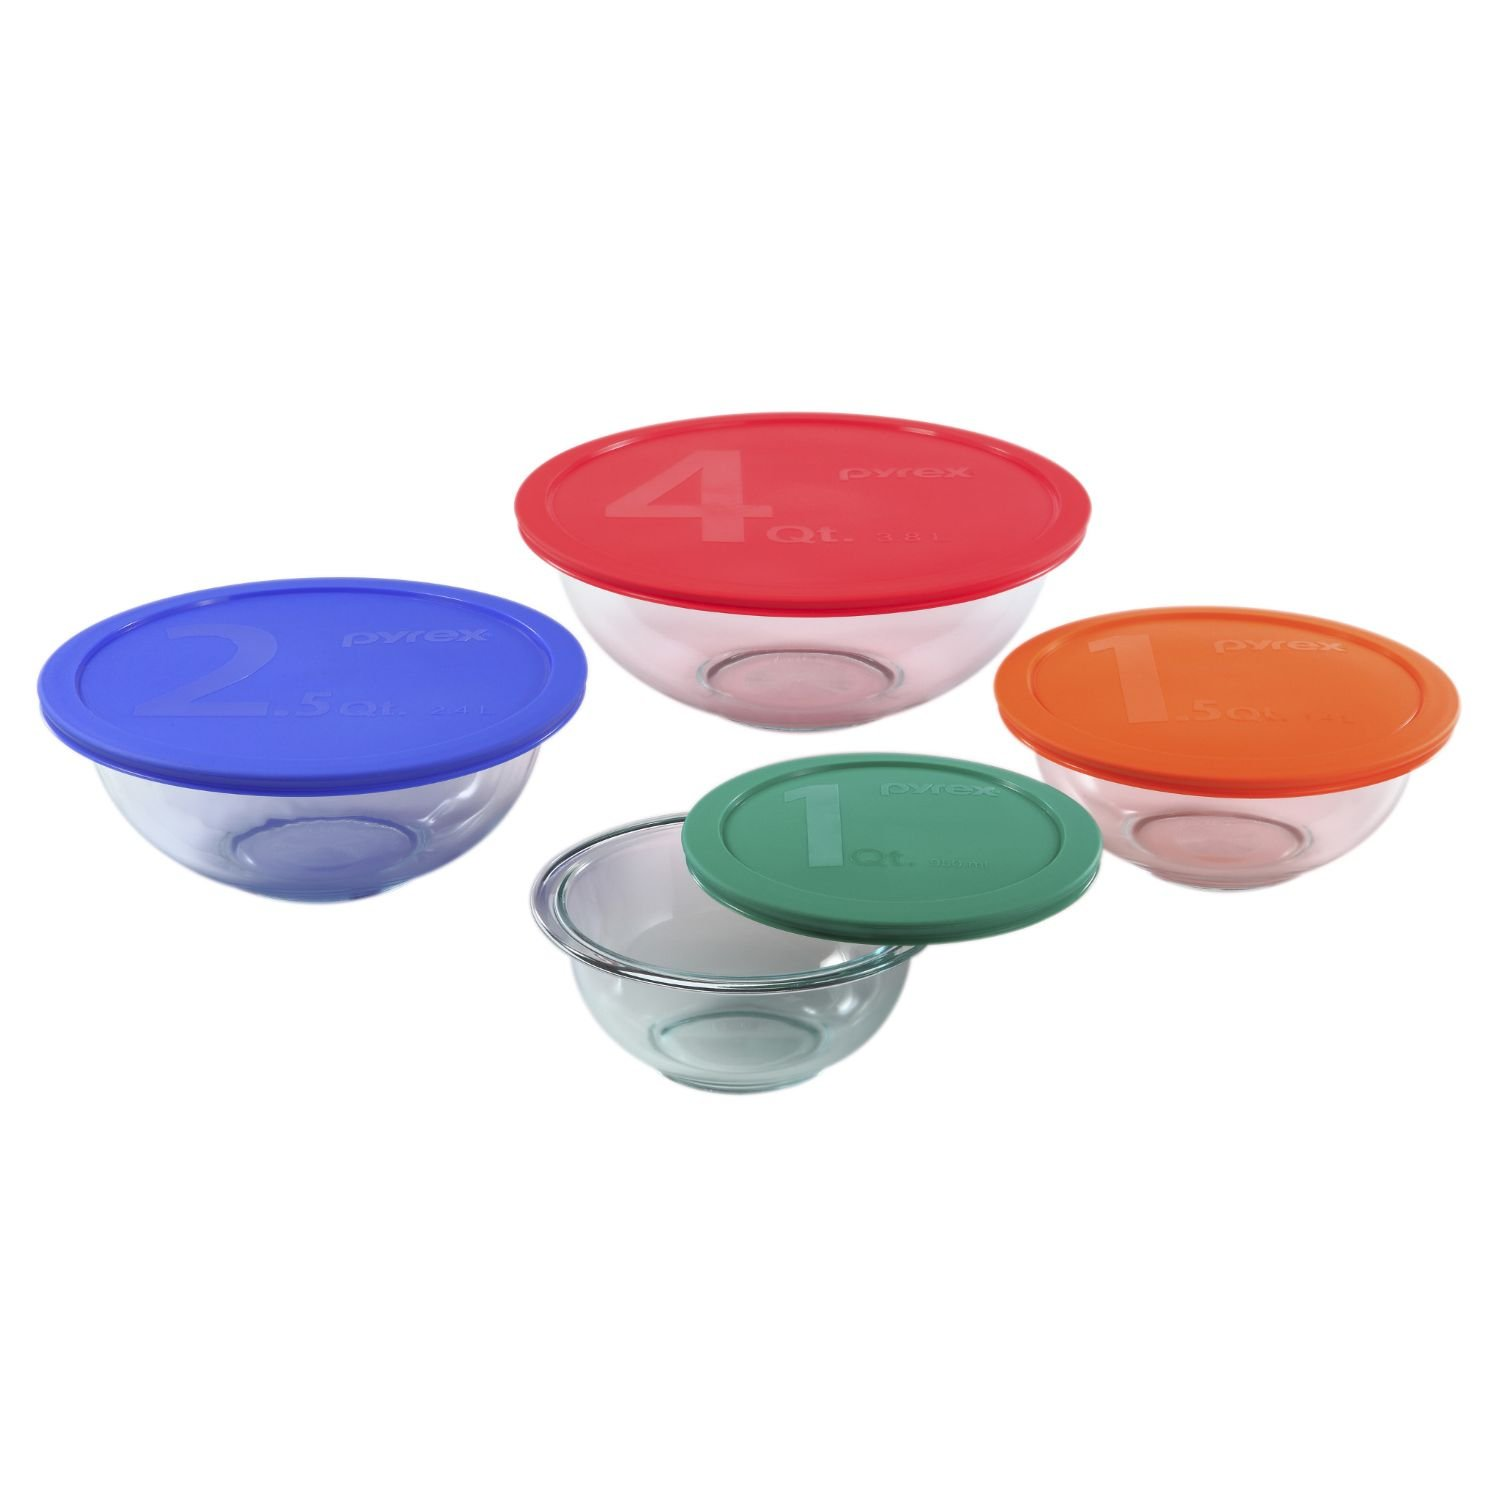 Pyrex Smart Essentials 8-Pc Glass Bowl Set